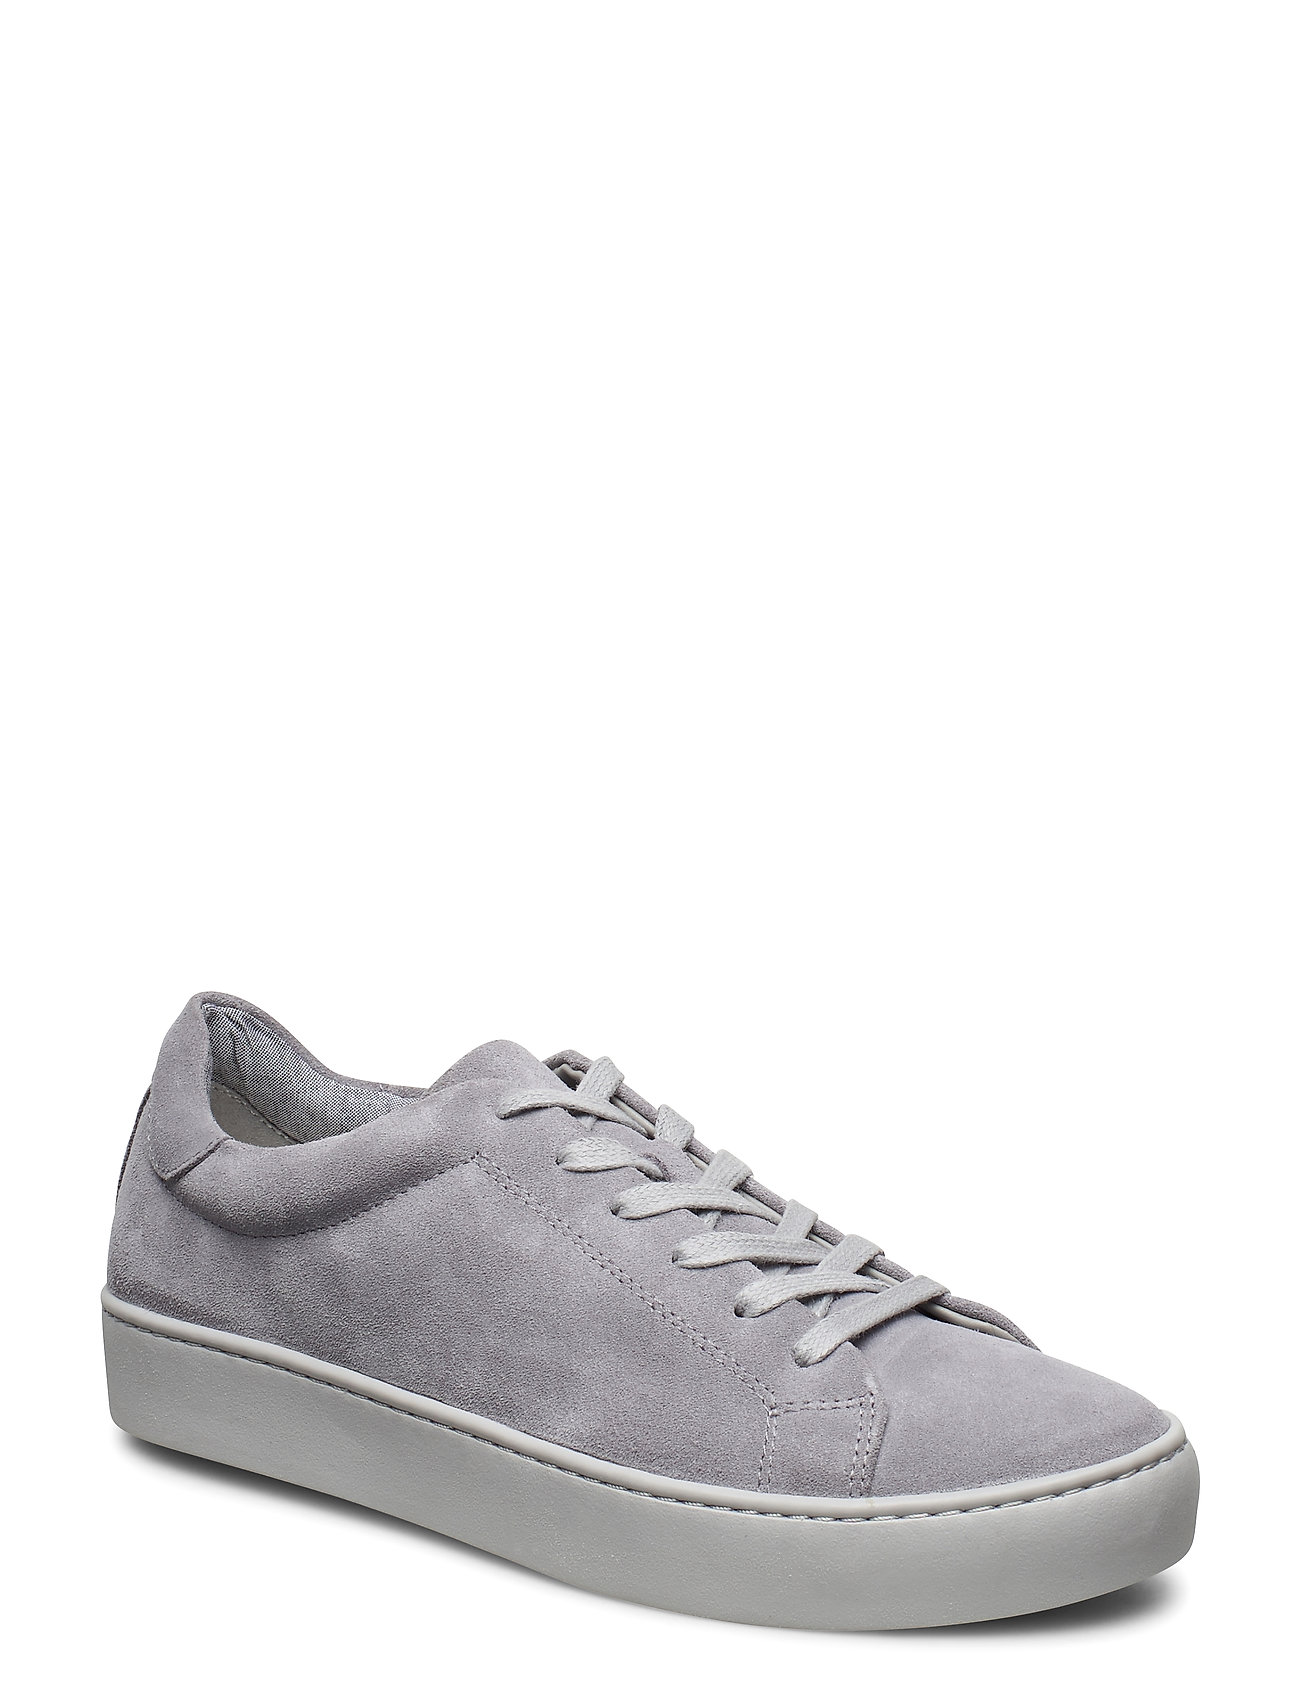 Image of Zoe Low-top Sneakers Grå VAGABOND (3455516605)